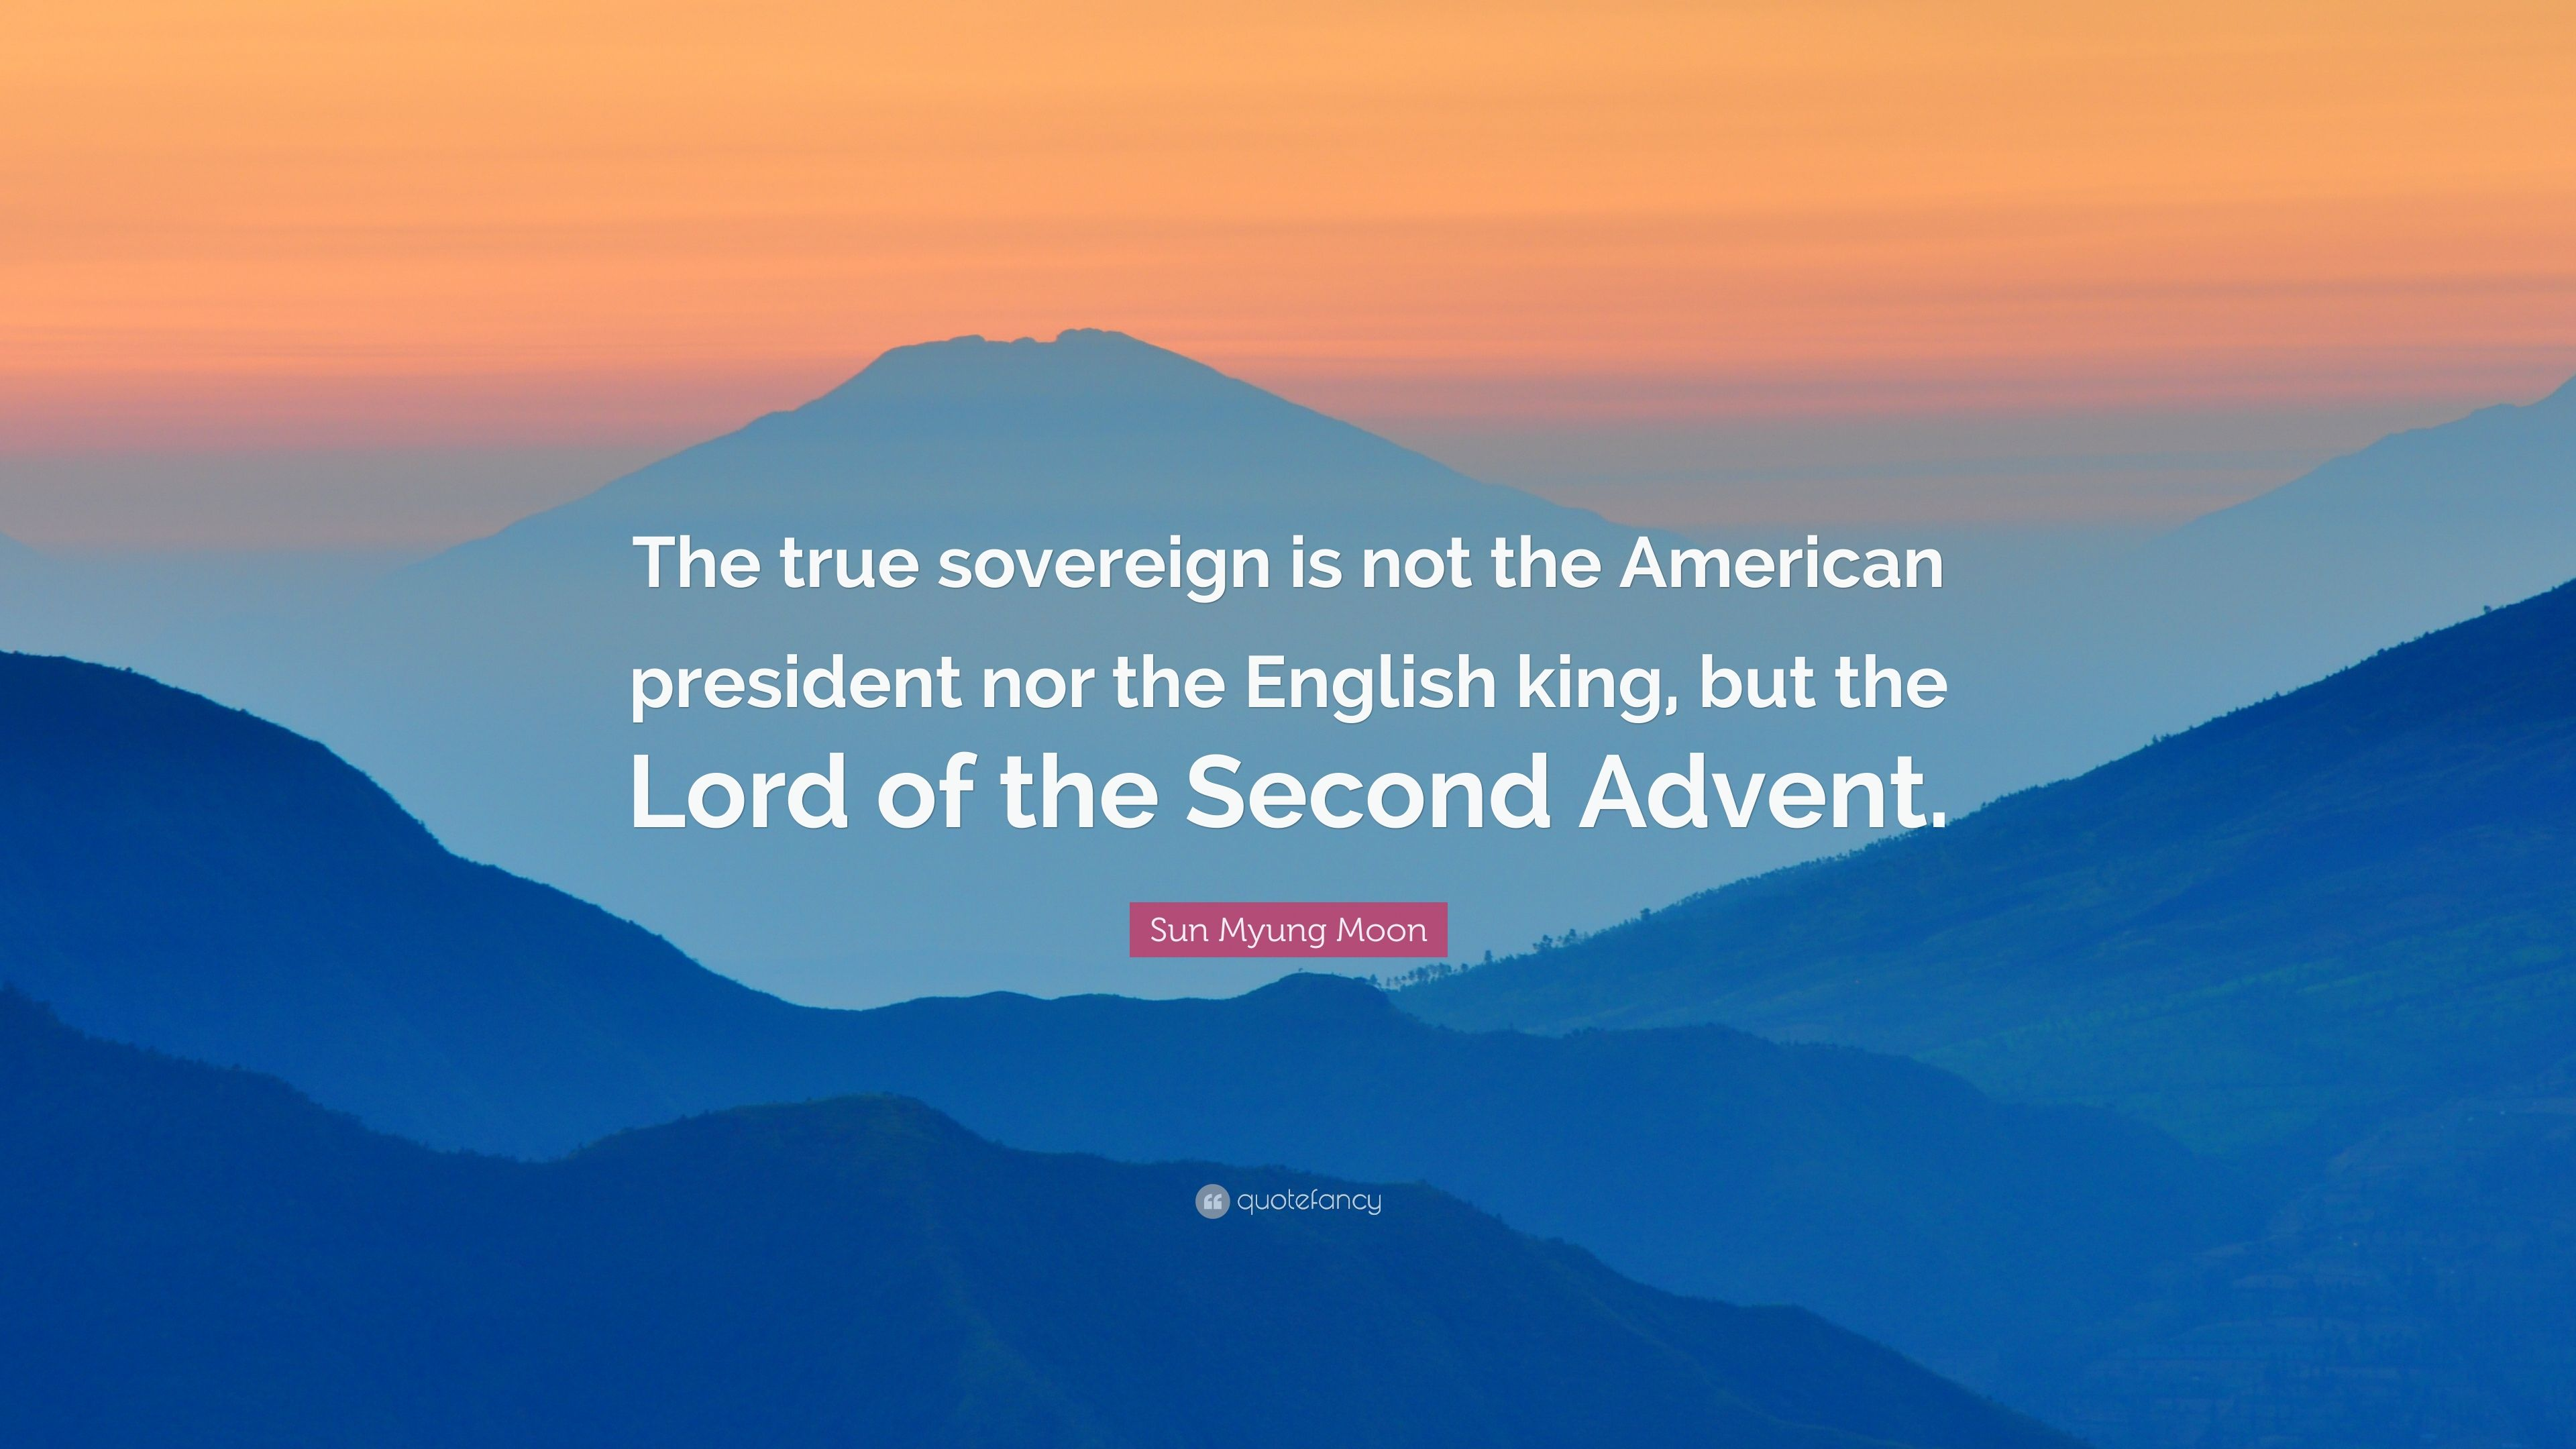 Amazing Wallpaper Lord English - 3473334-Sun-Myung-Moon-Quote-The-true-sovereign-is-not-the-American  Image_1001865.jpg